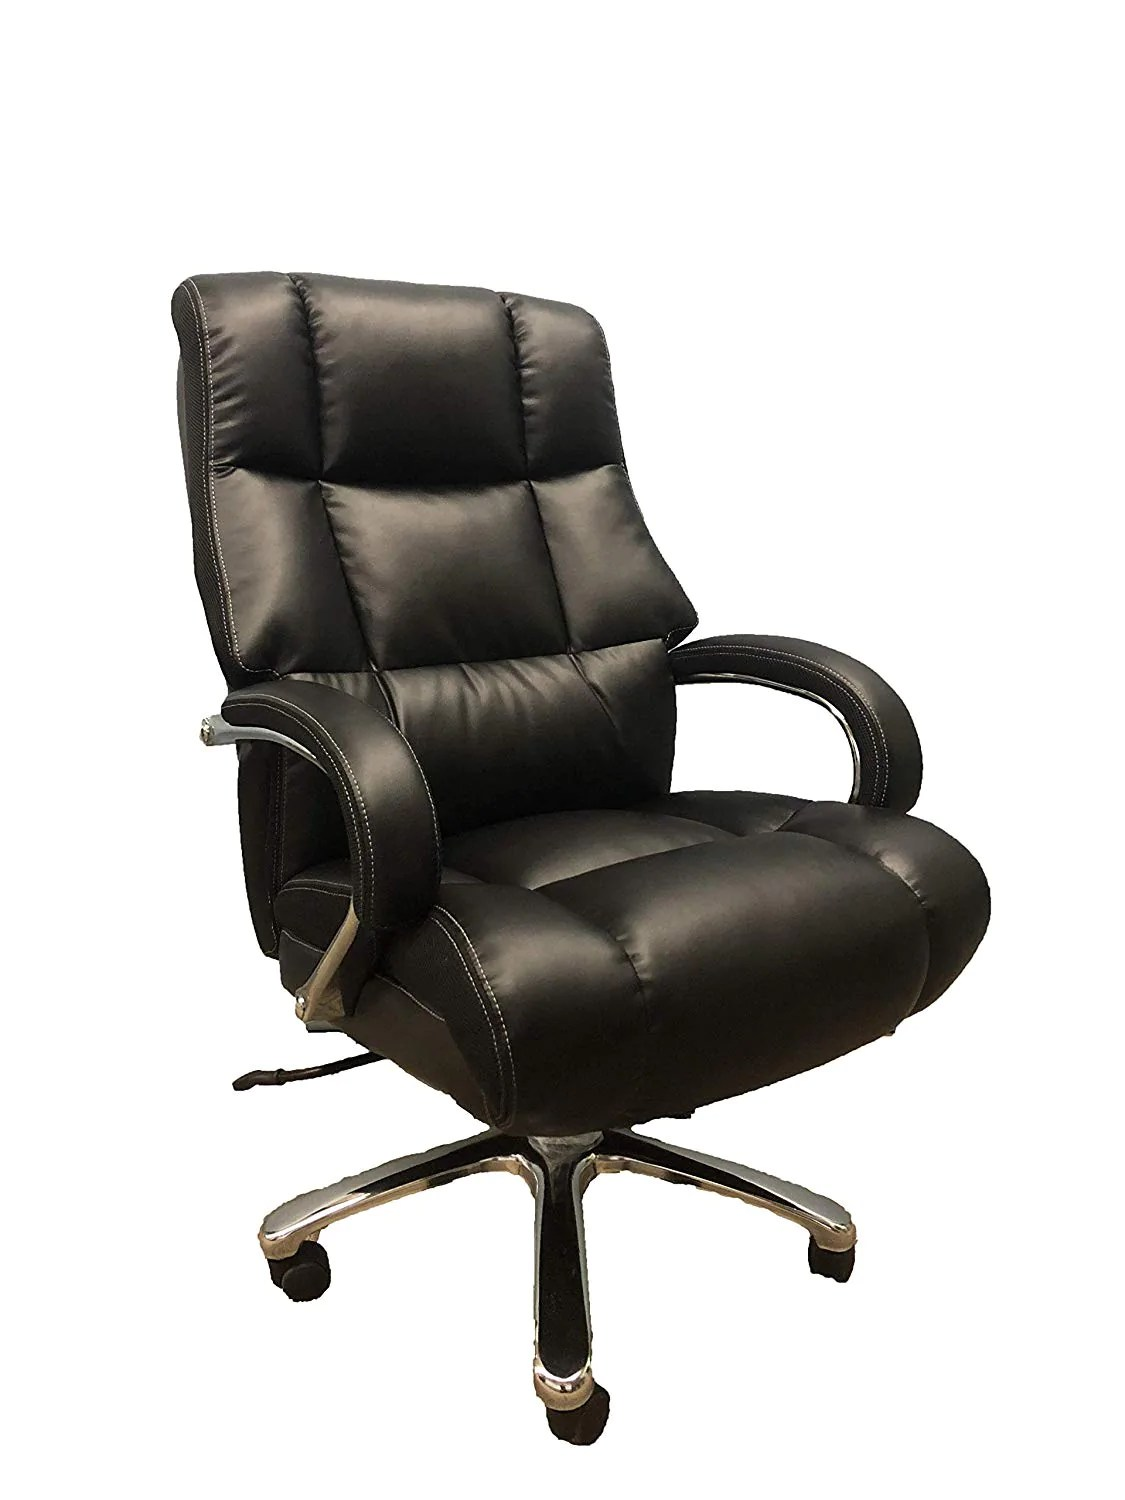 Chairs Comfortable Big And Tall Black Comfort Executive Office Chair With Extra Thick Padded Chrome Arms